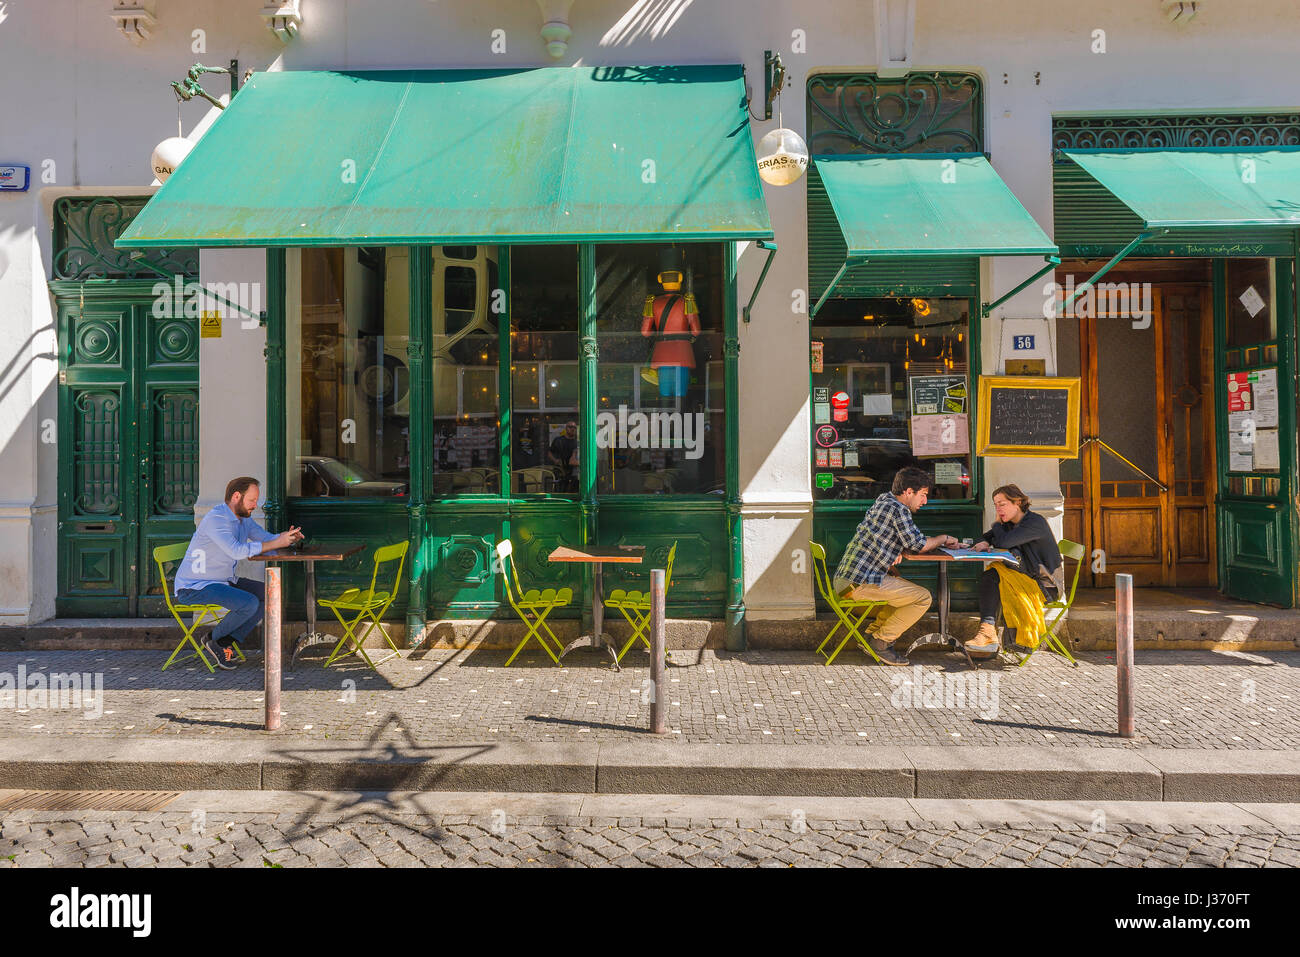 Cafe Porto Portugal People Sit At Tables Outside A Bar In Quiet Street The Center Of